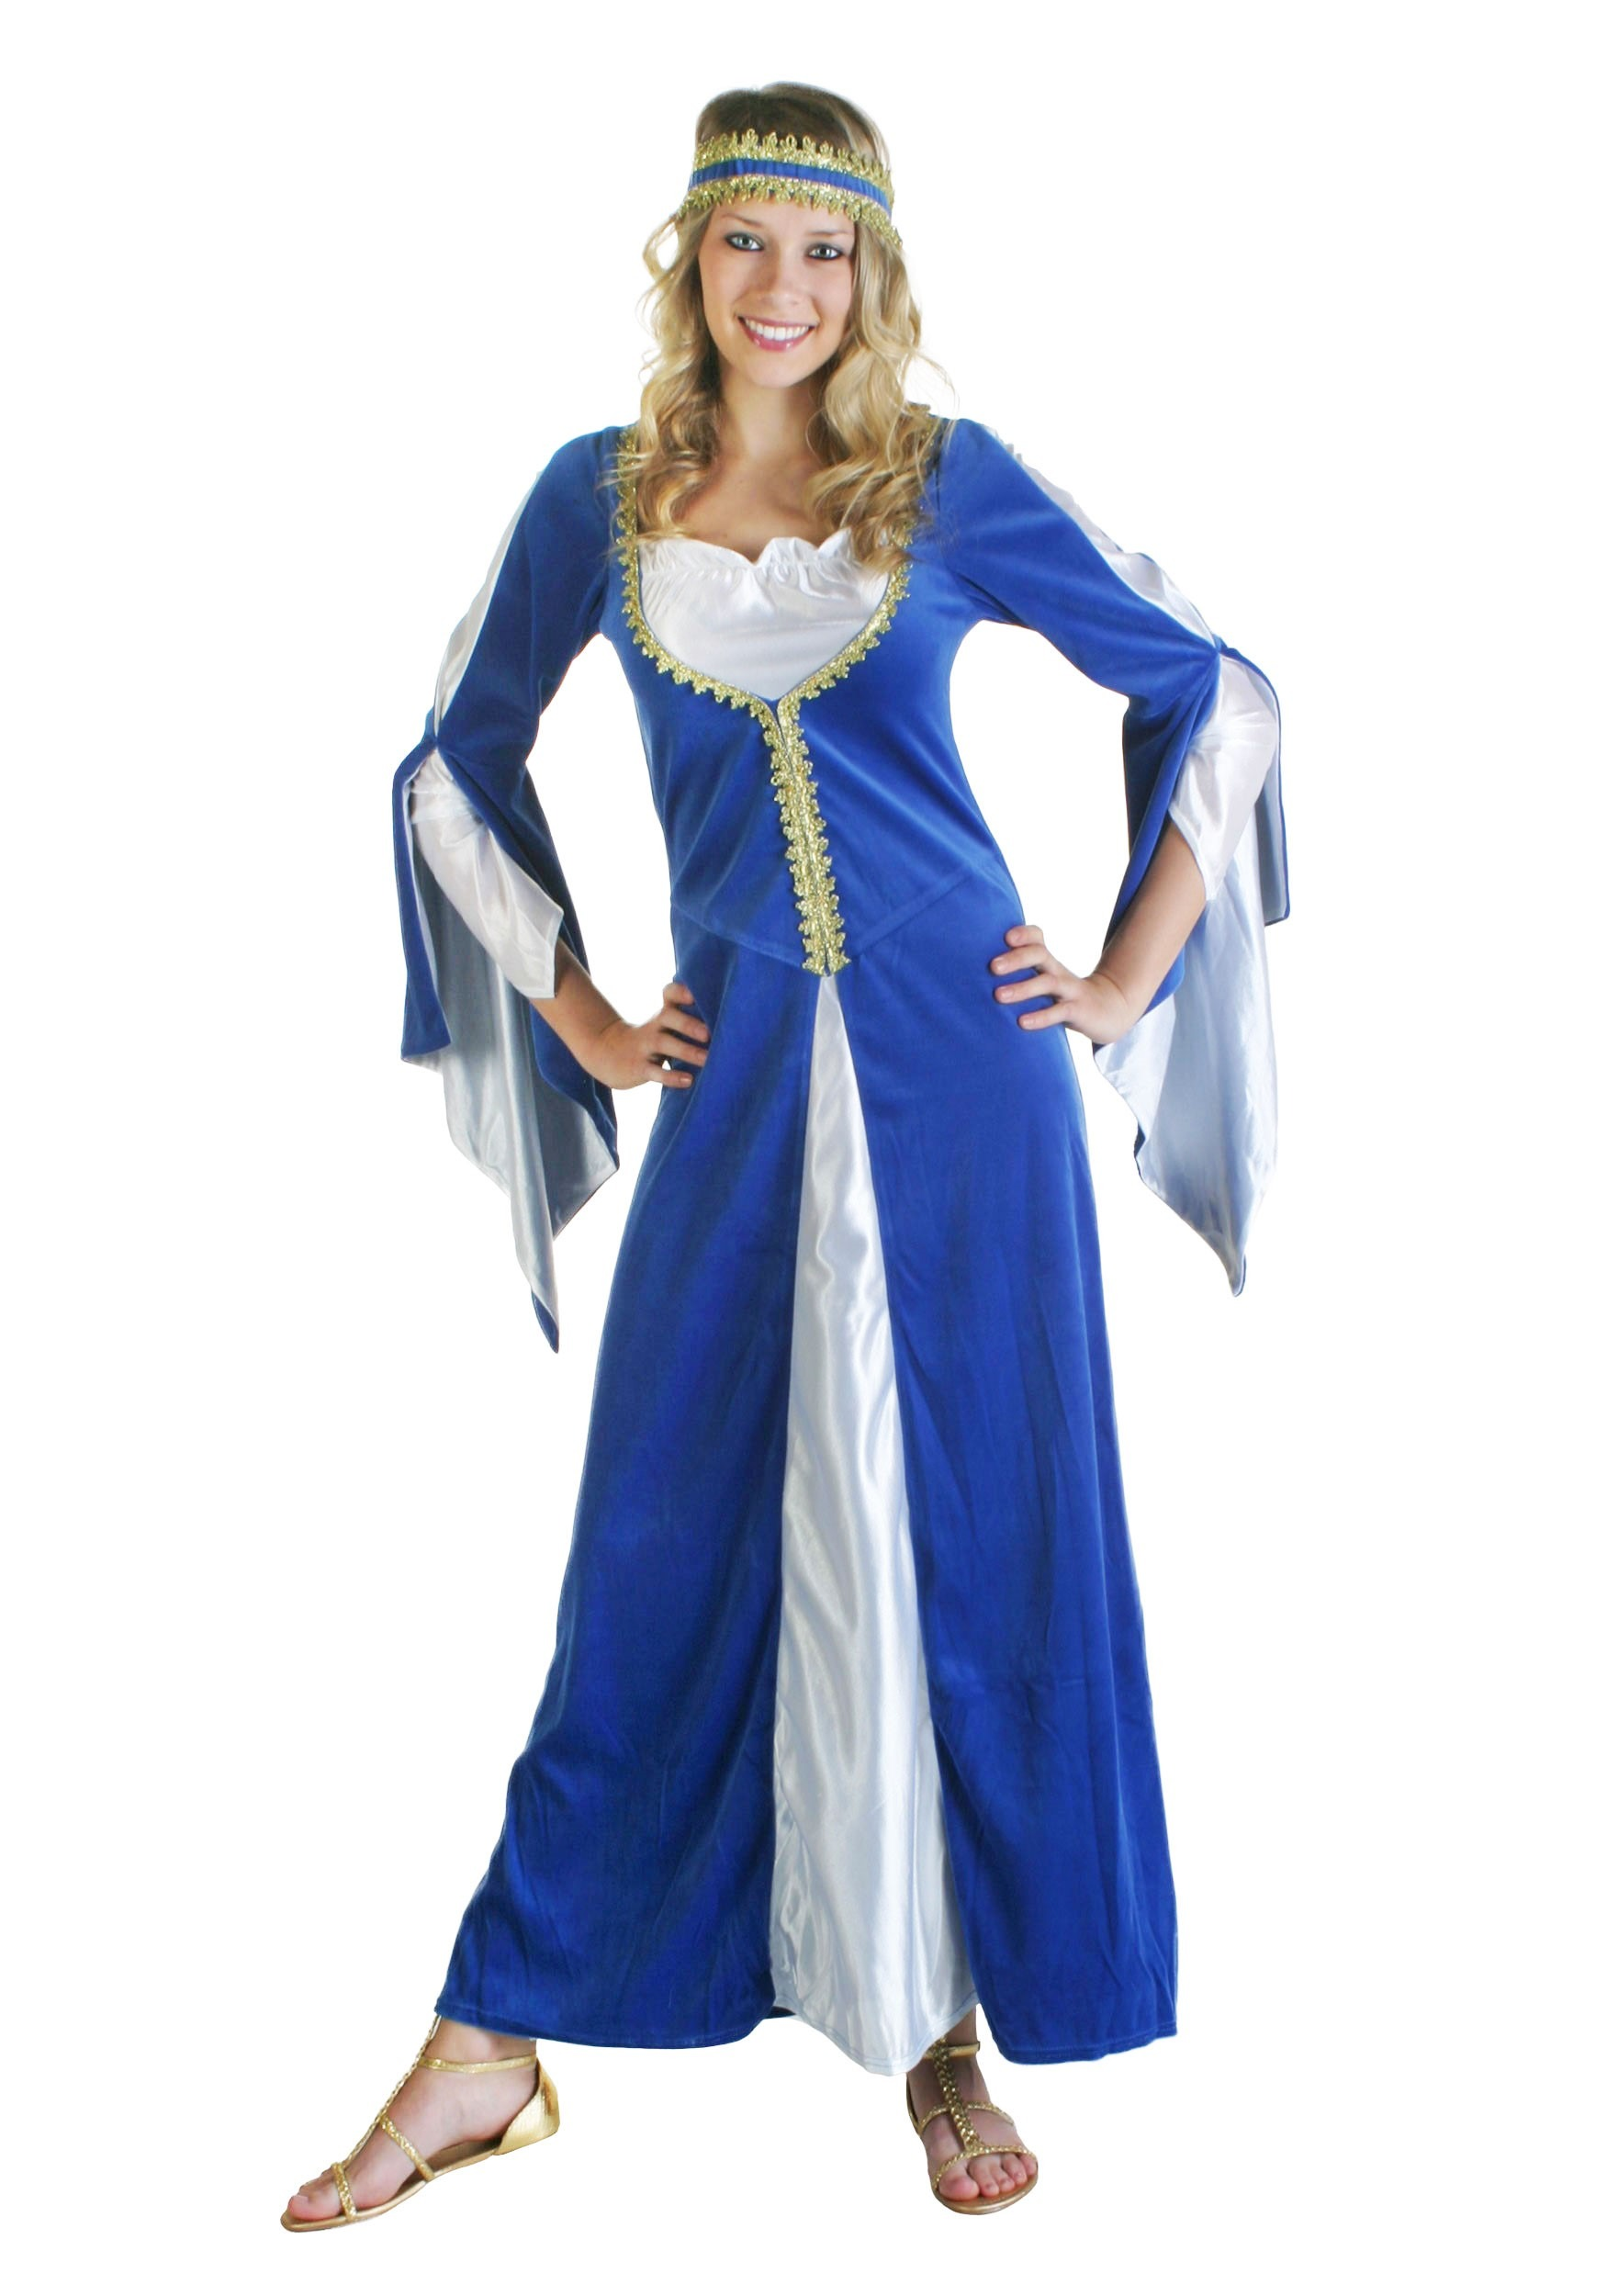 Adult Princess Costume  sc 1 st  Halloween Costume : princess halloween costume adult  - Germanpascual.Com